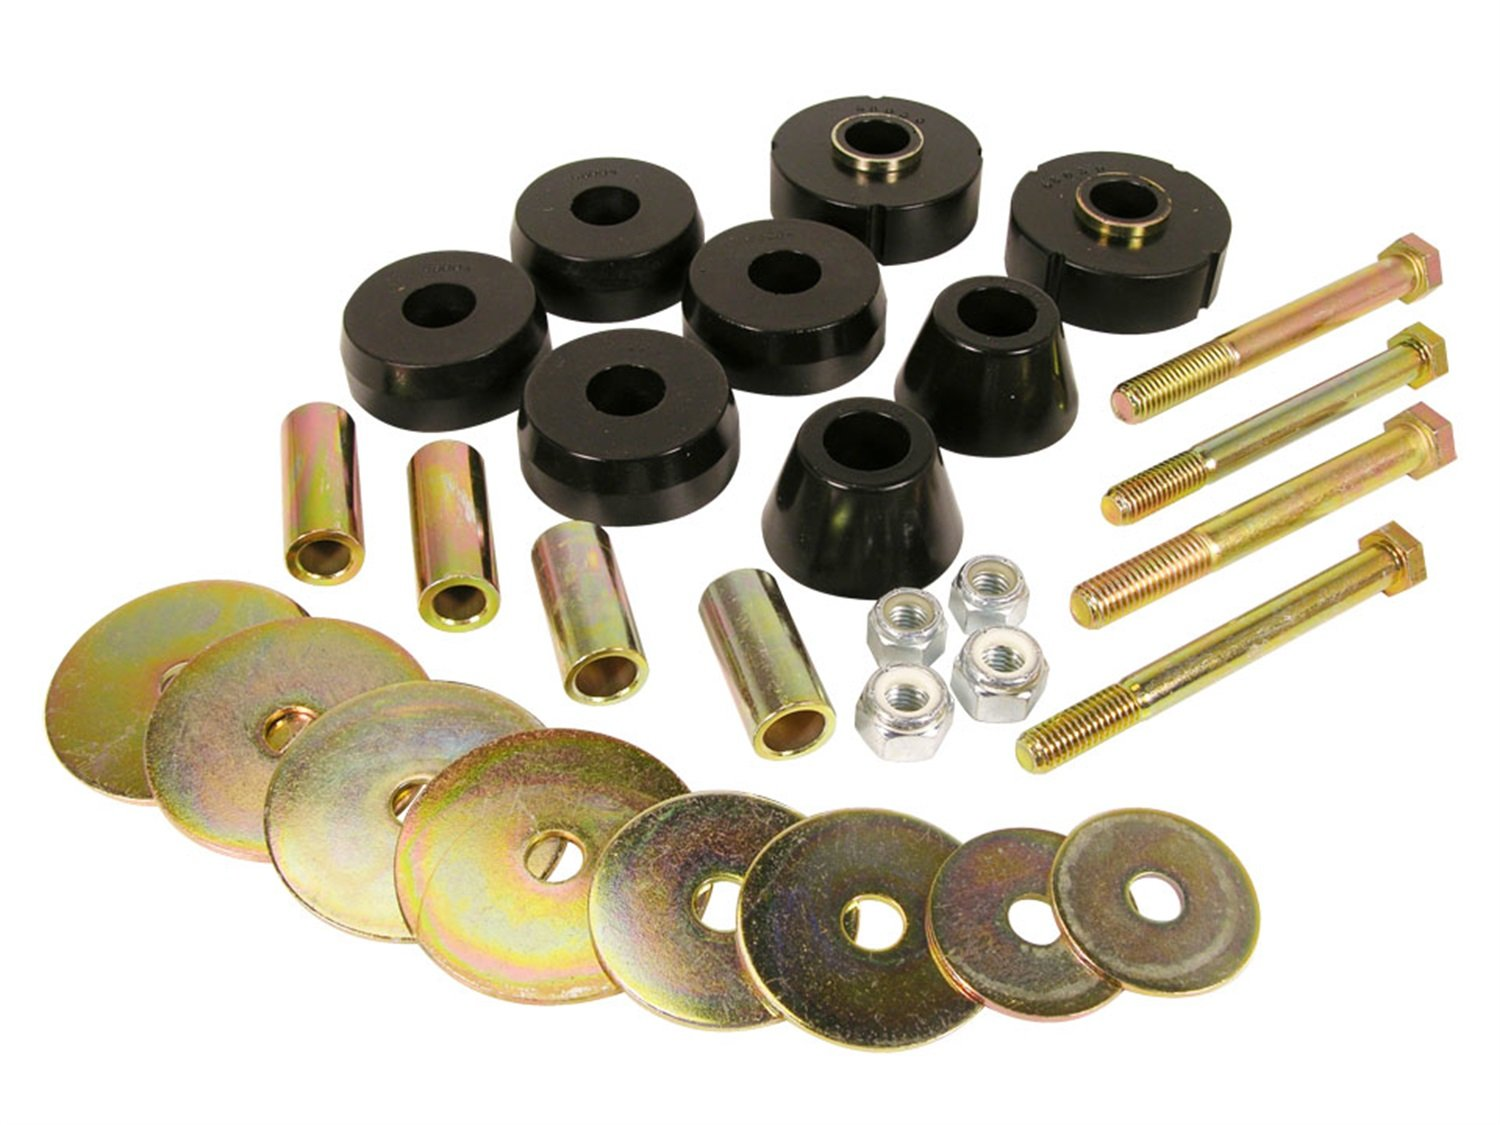 Prothane 7-118-BL Black Body and Standard Cab Mount Bushing Kit - 8 Piece by Prothane